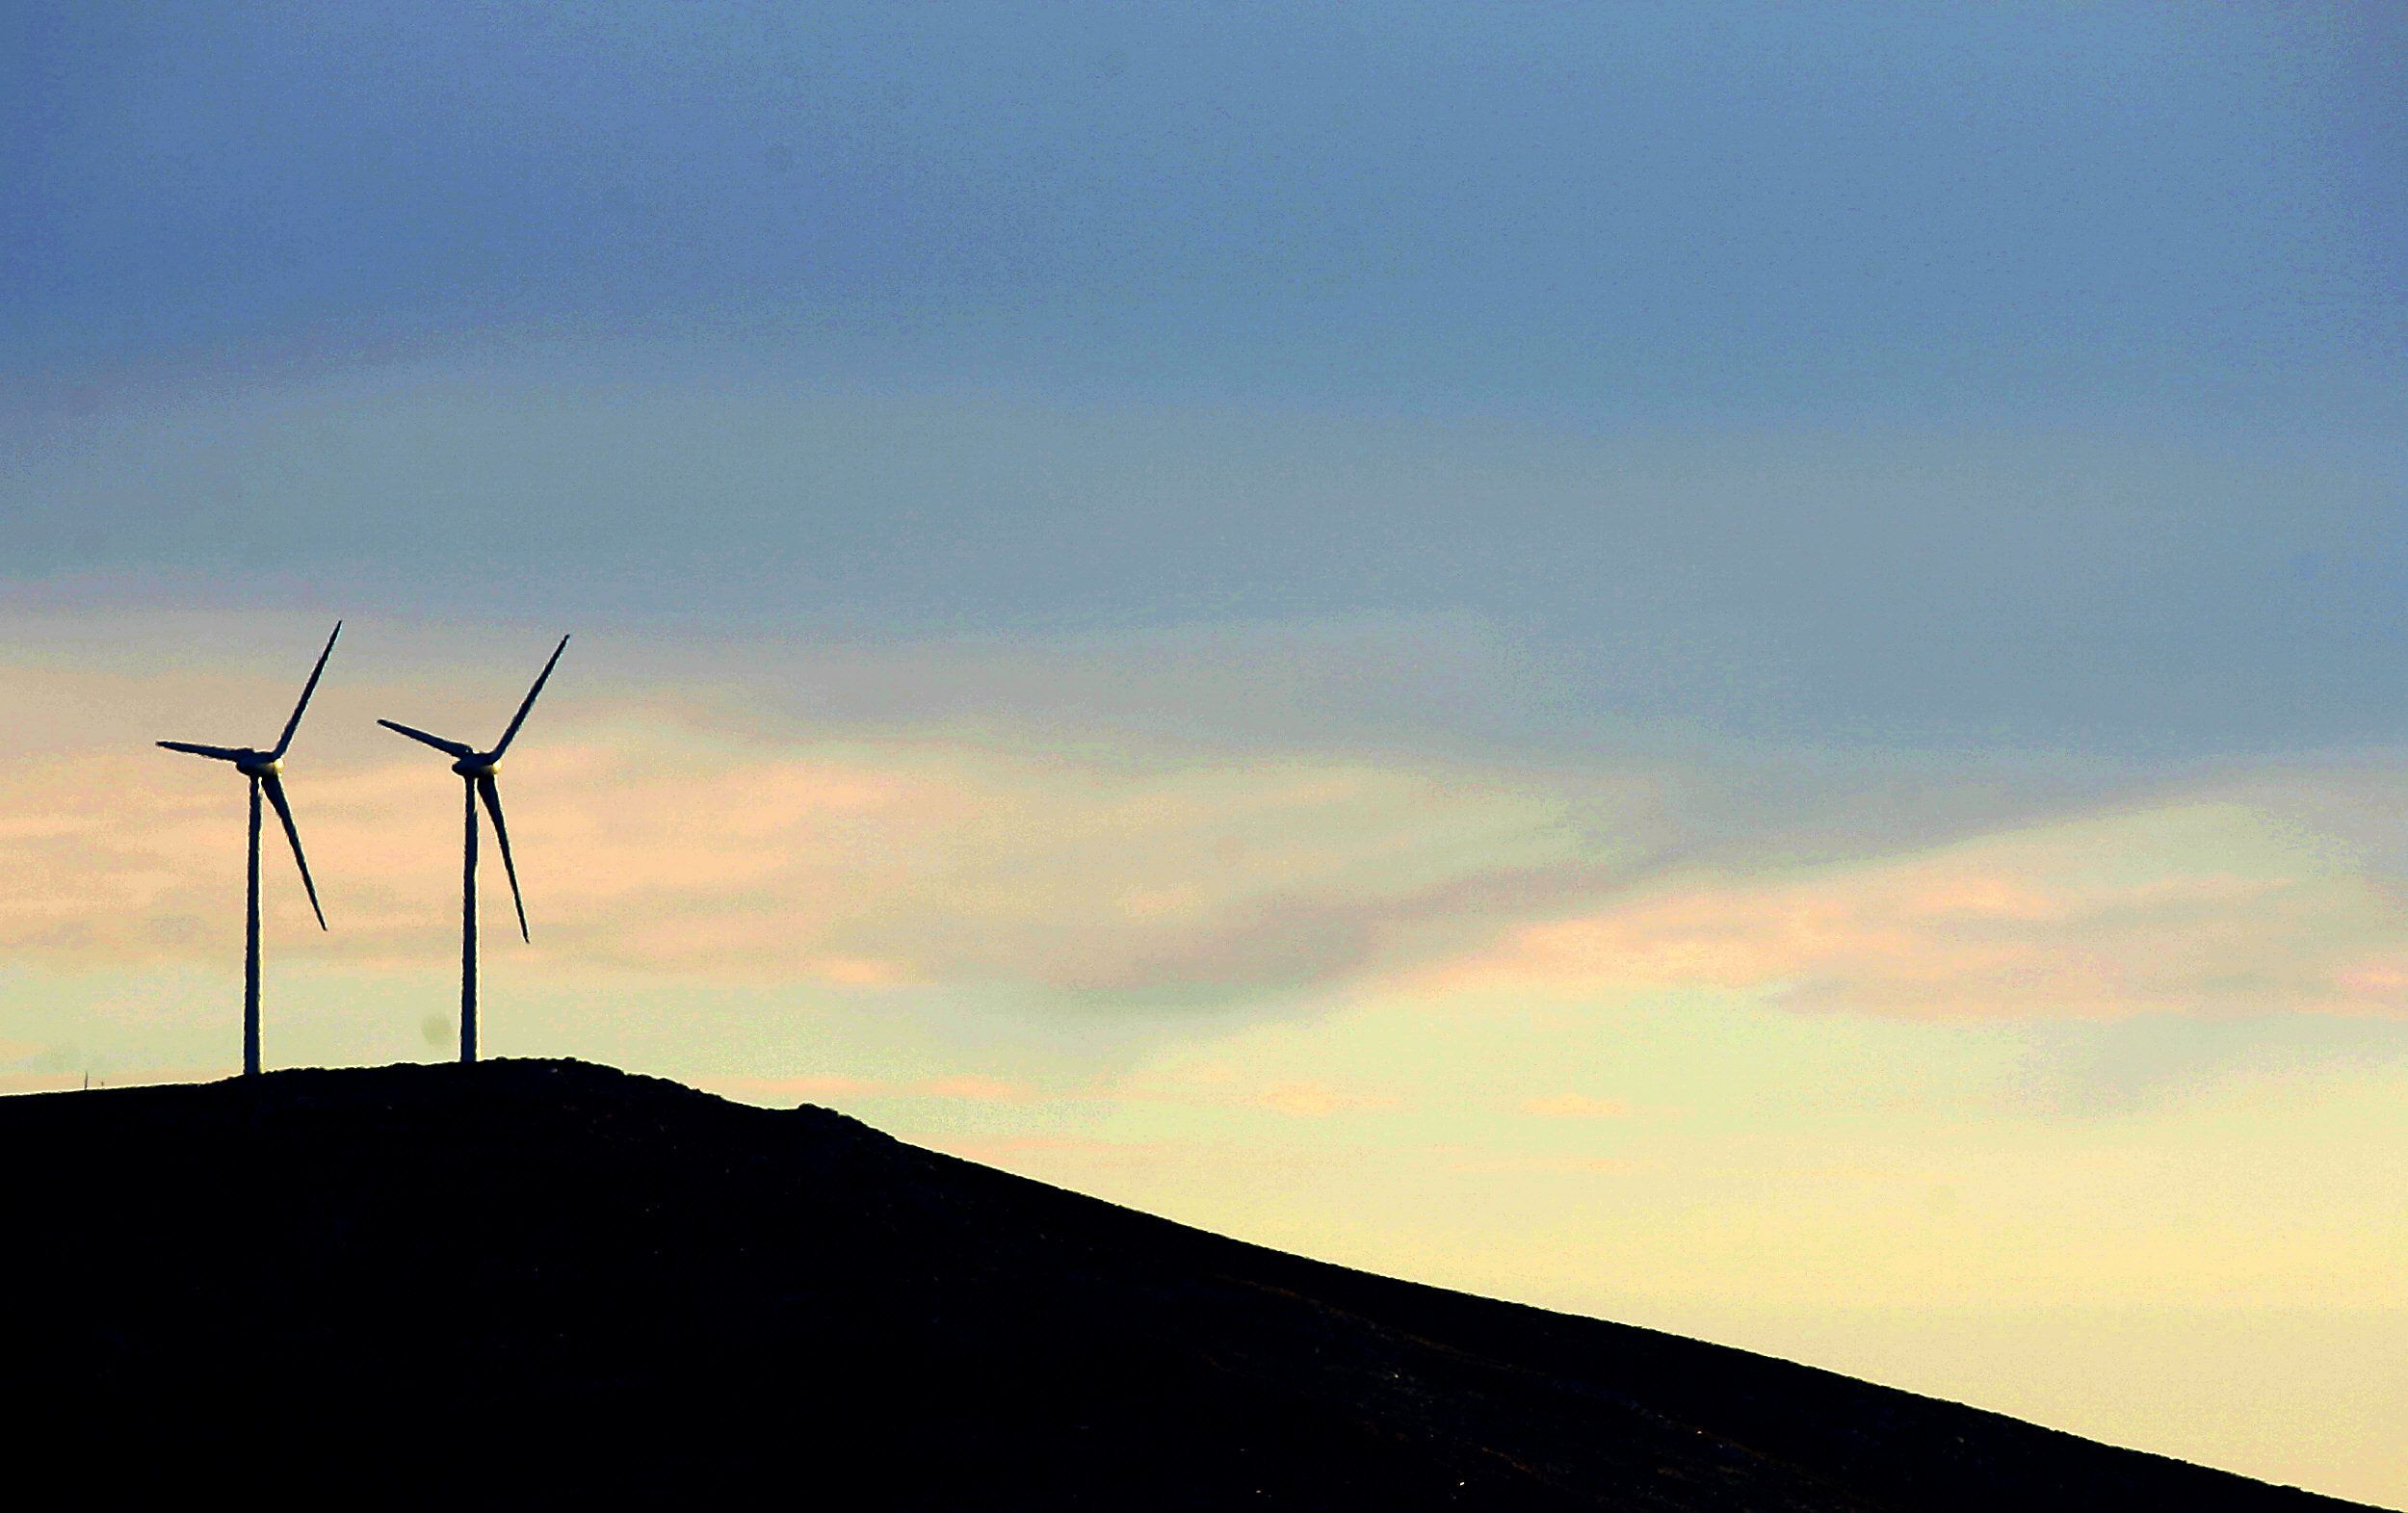 Portugal Produced More Renewable Energy Than It Needed Last